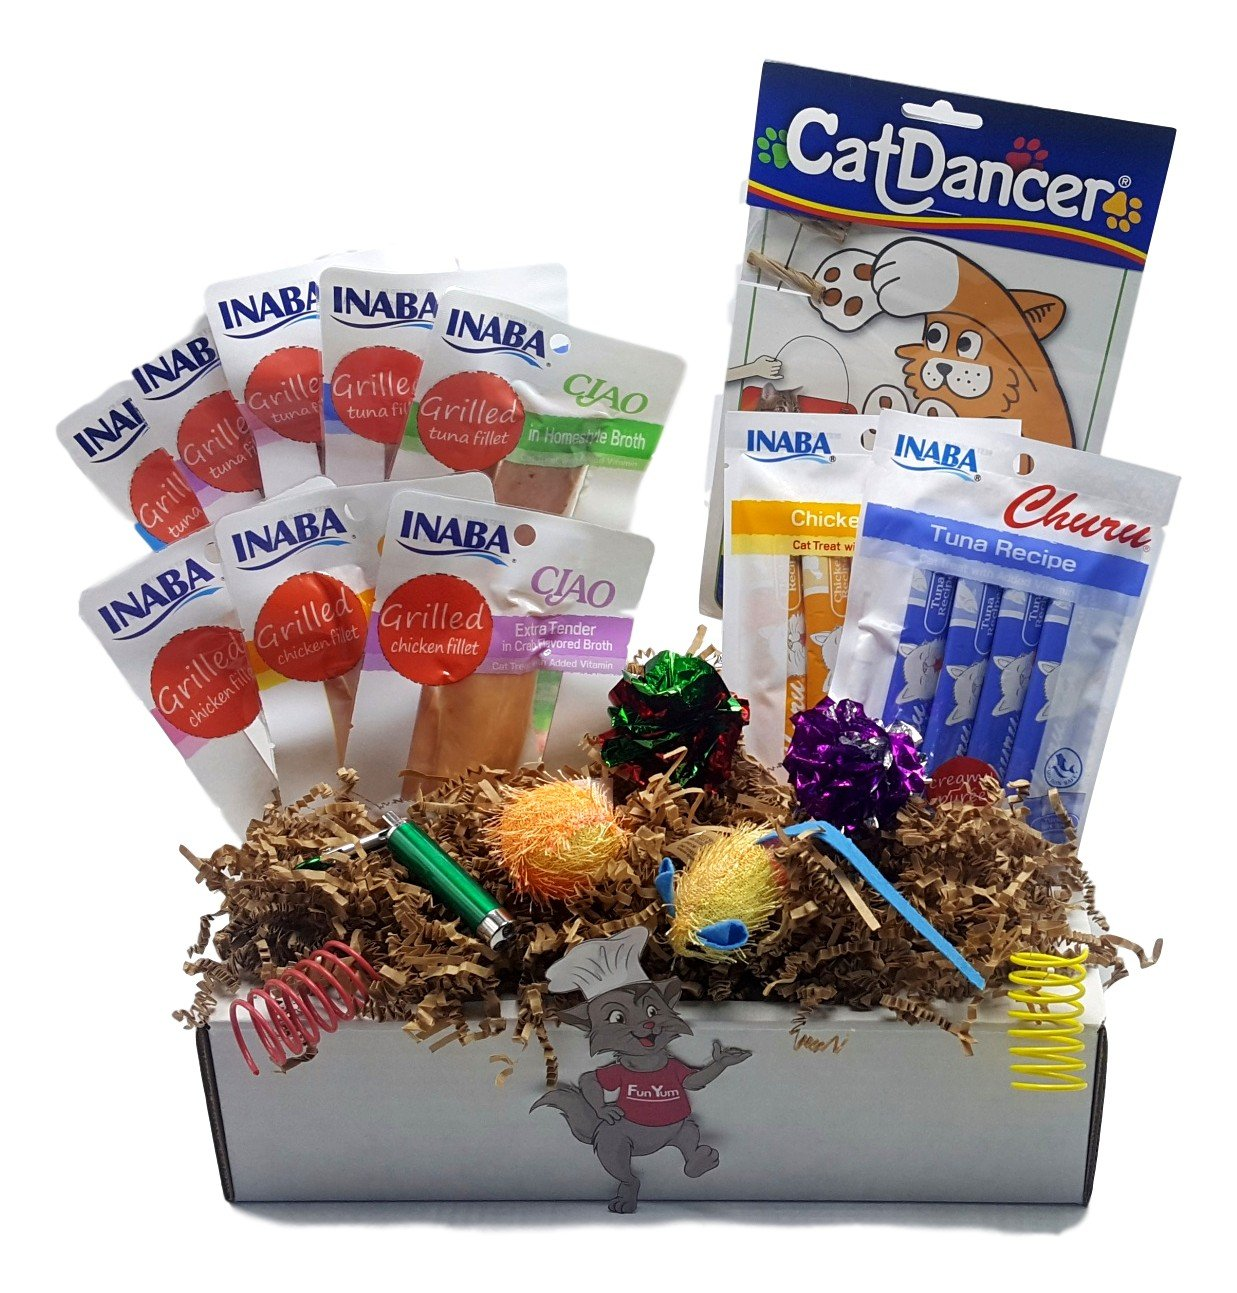 Fun Yum Cat Goodie Box with Cat Treats and Toys, 18-pack (Includes: 1 Stringy Mouse with Catnip, 2 Crinkle Balls, 2 Springs, 1 CatDancer, 3 Chicken and 5 Tuna Fillets plus more) 12″x9″x2.5″